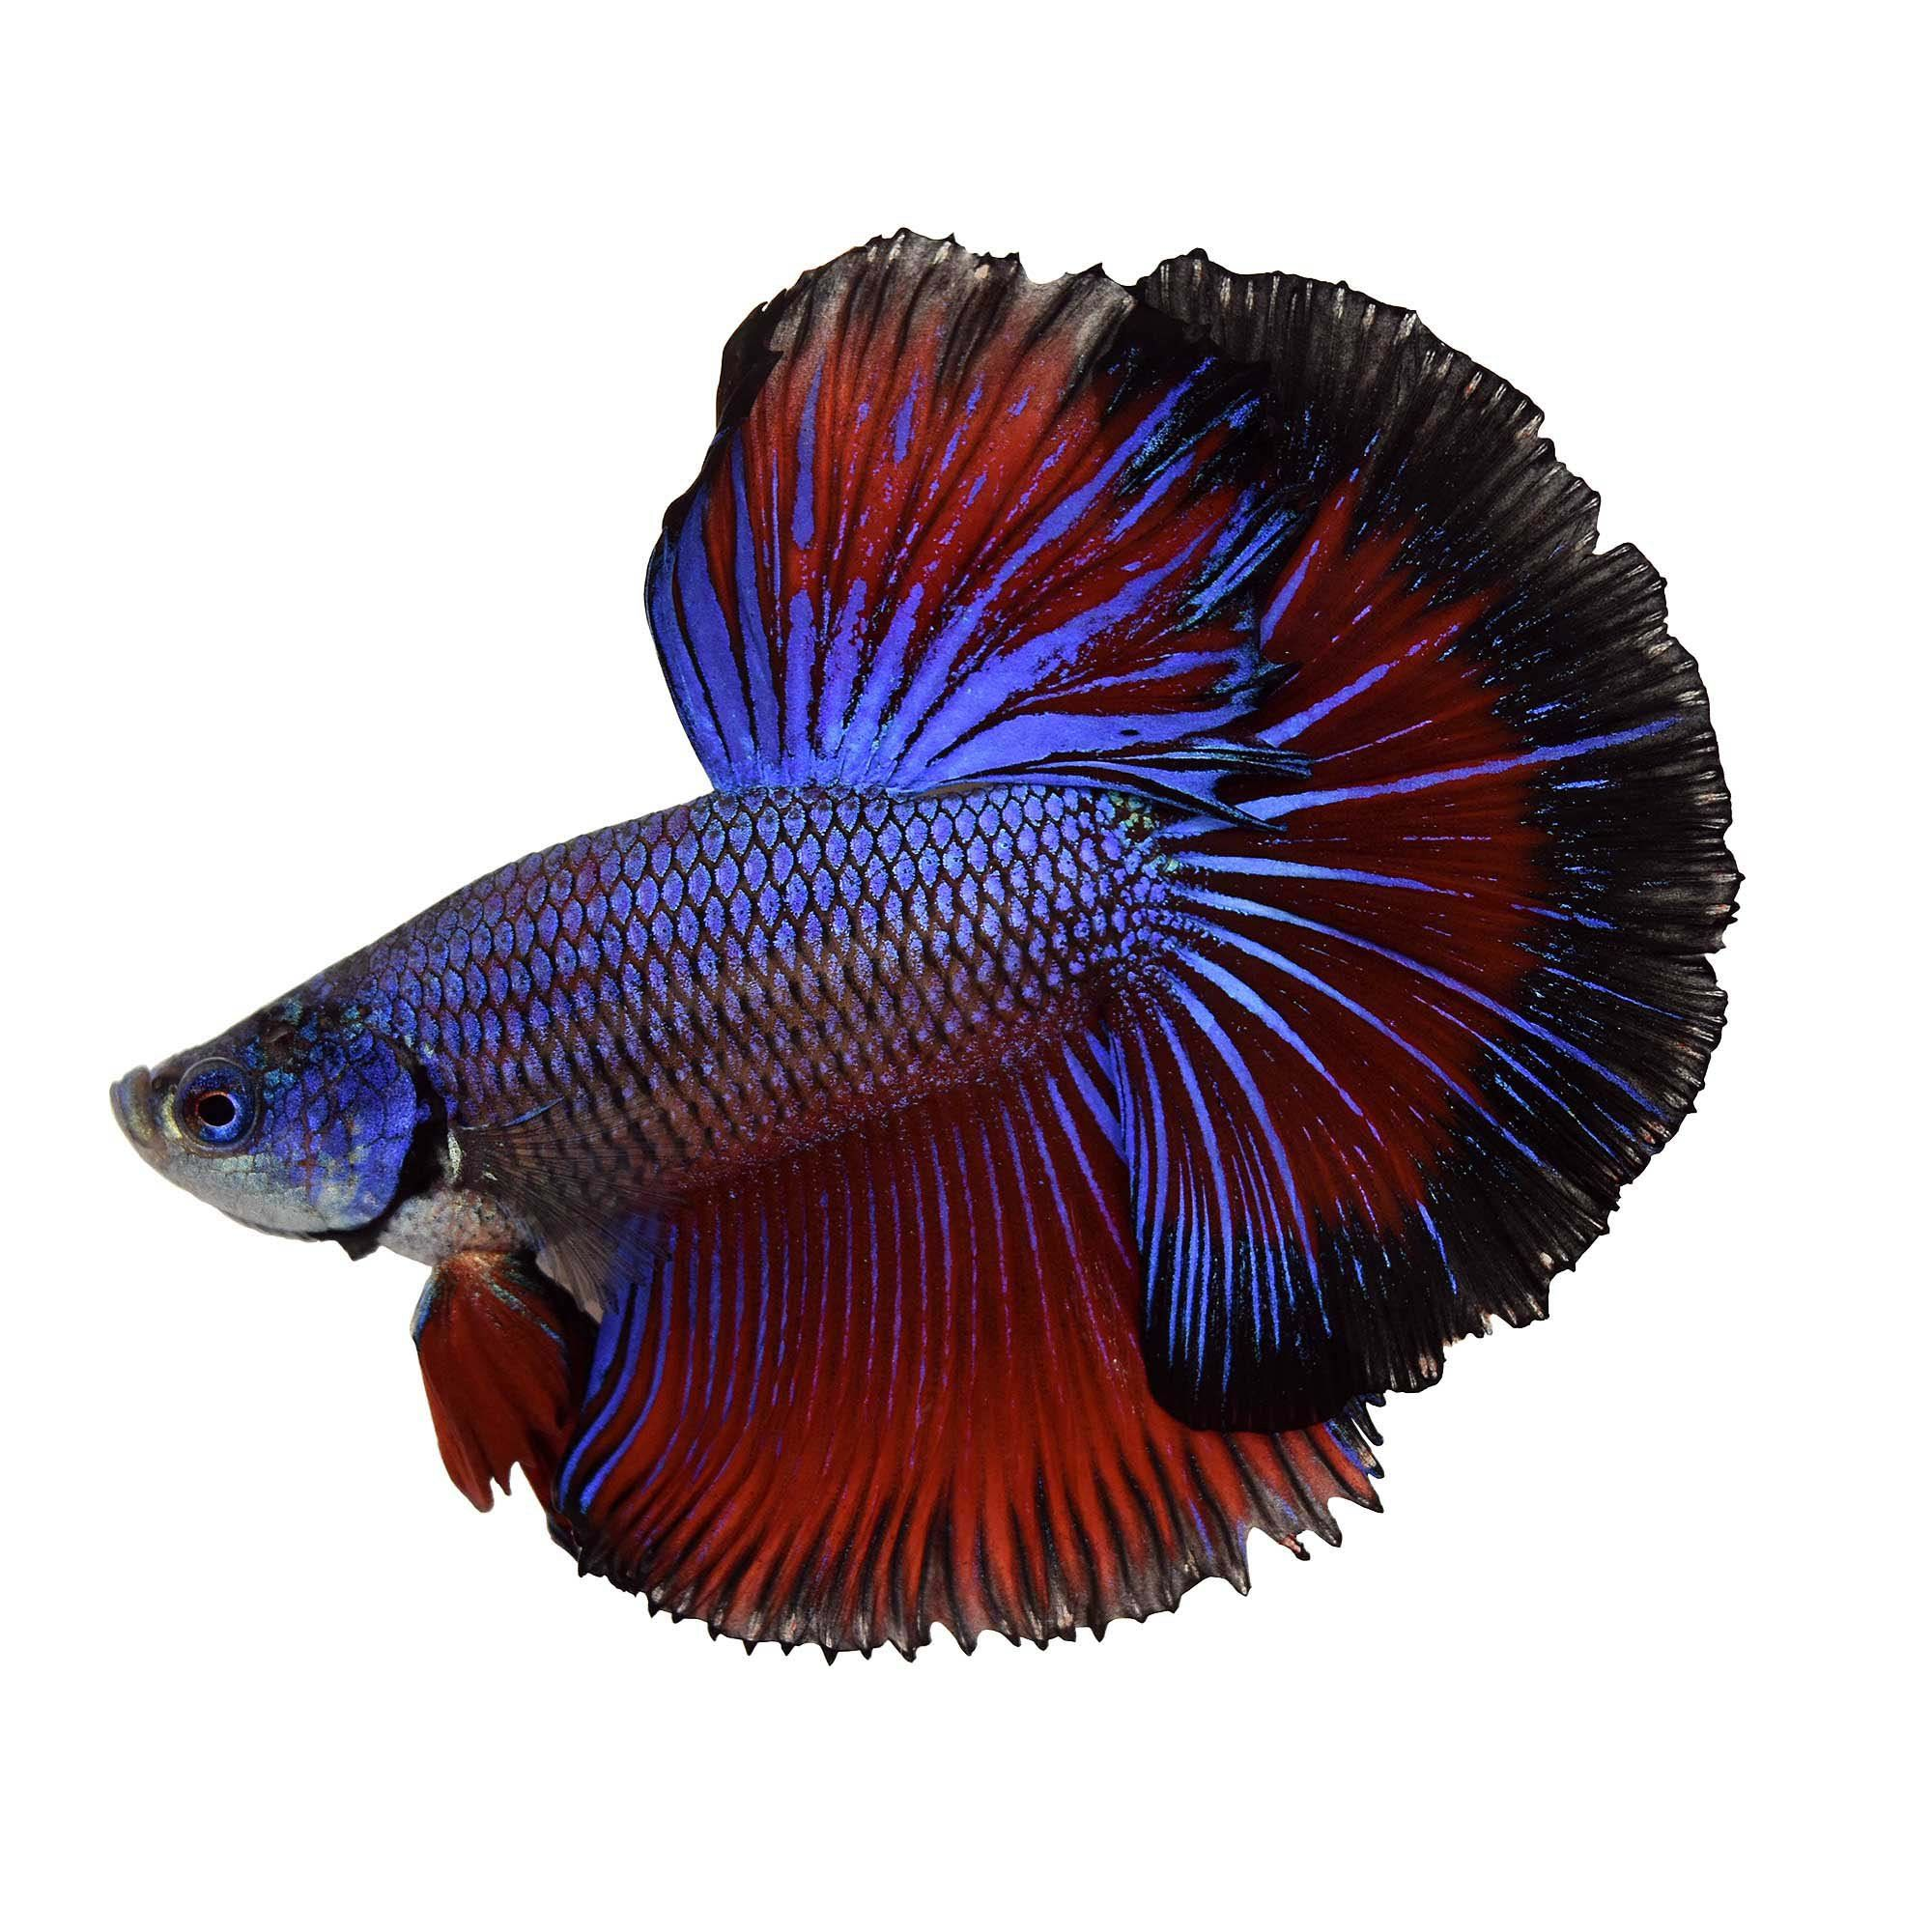 Male Halfmoon Betta Fish Siamese Fighting Fish Extra Large Petco Halfmoon Betta Siamese Fighting Fish Betta Fish